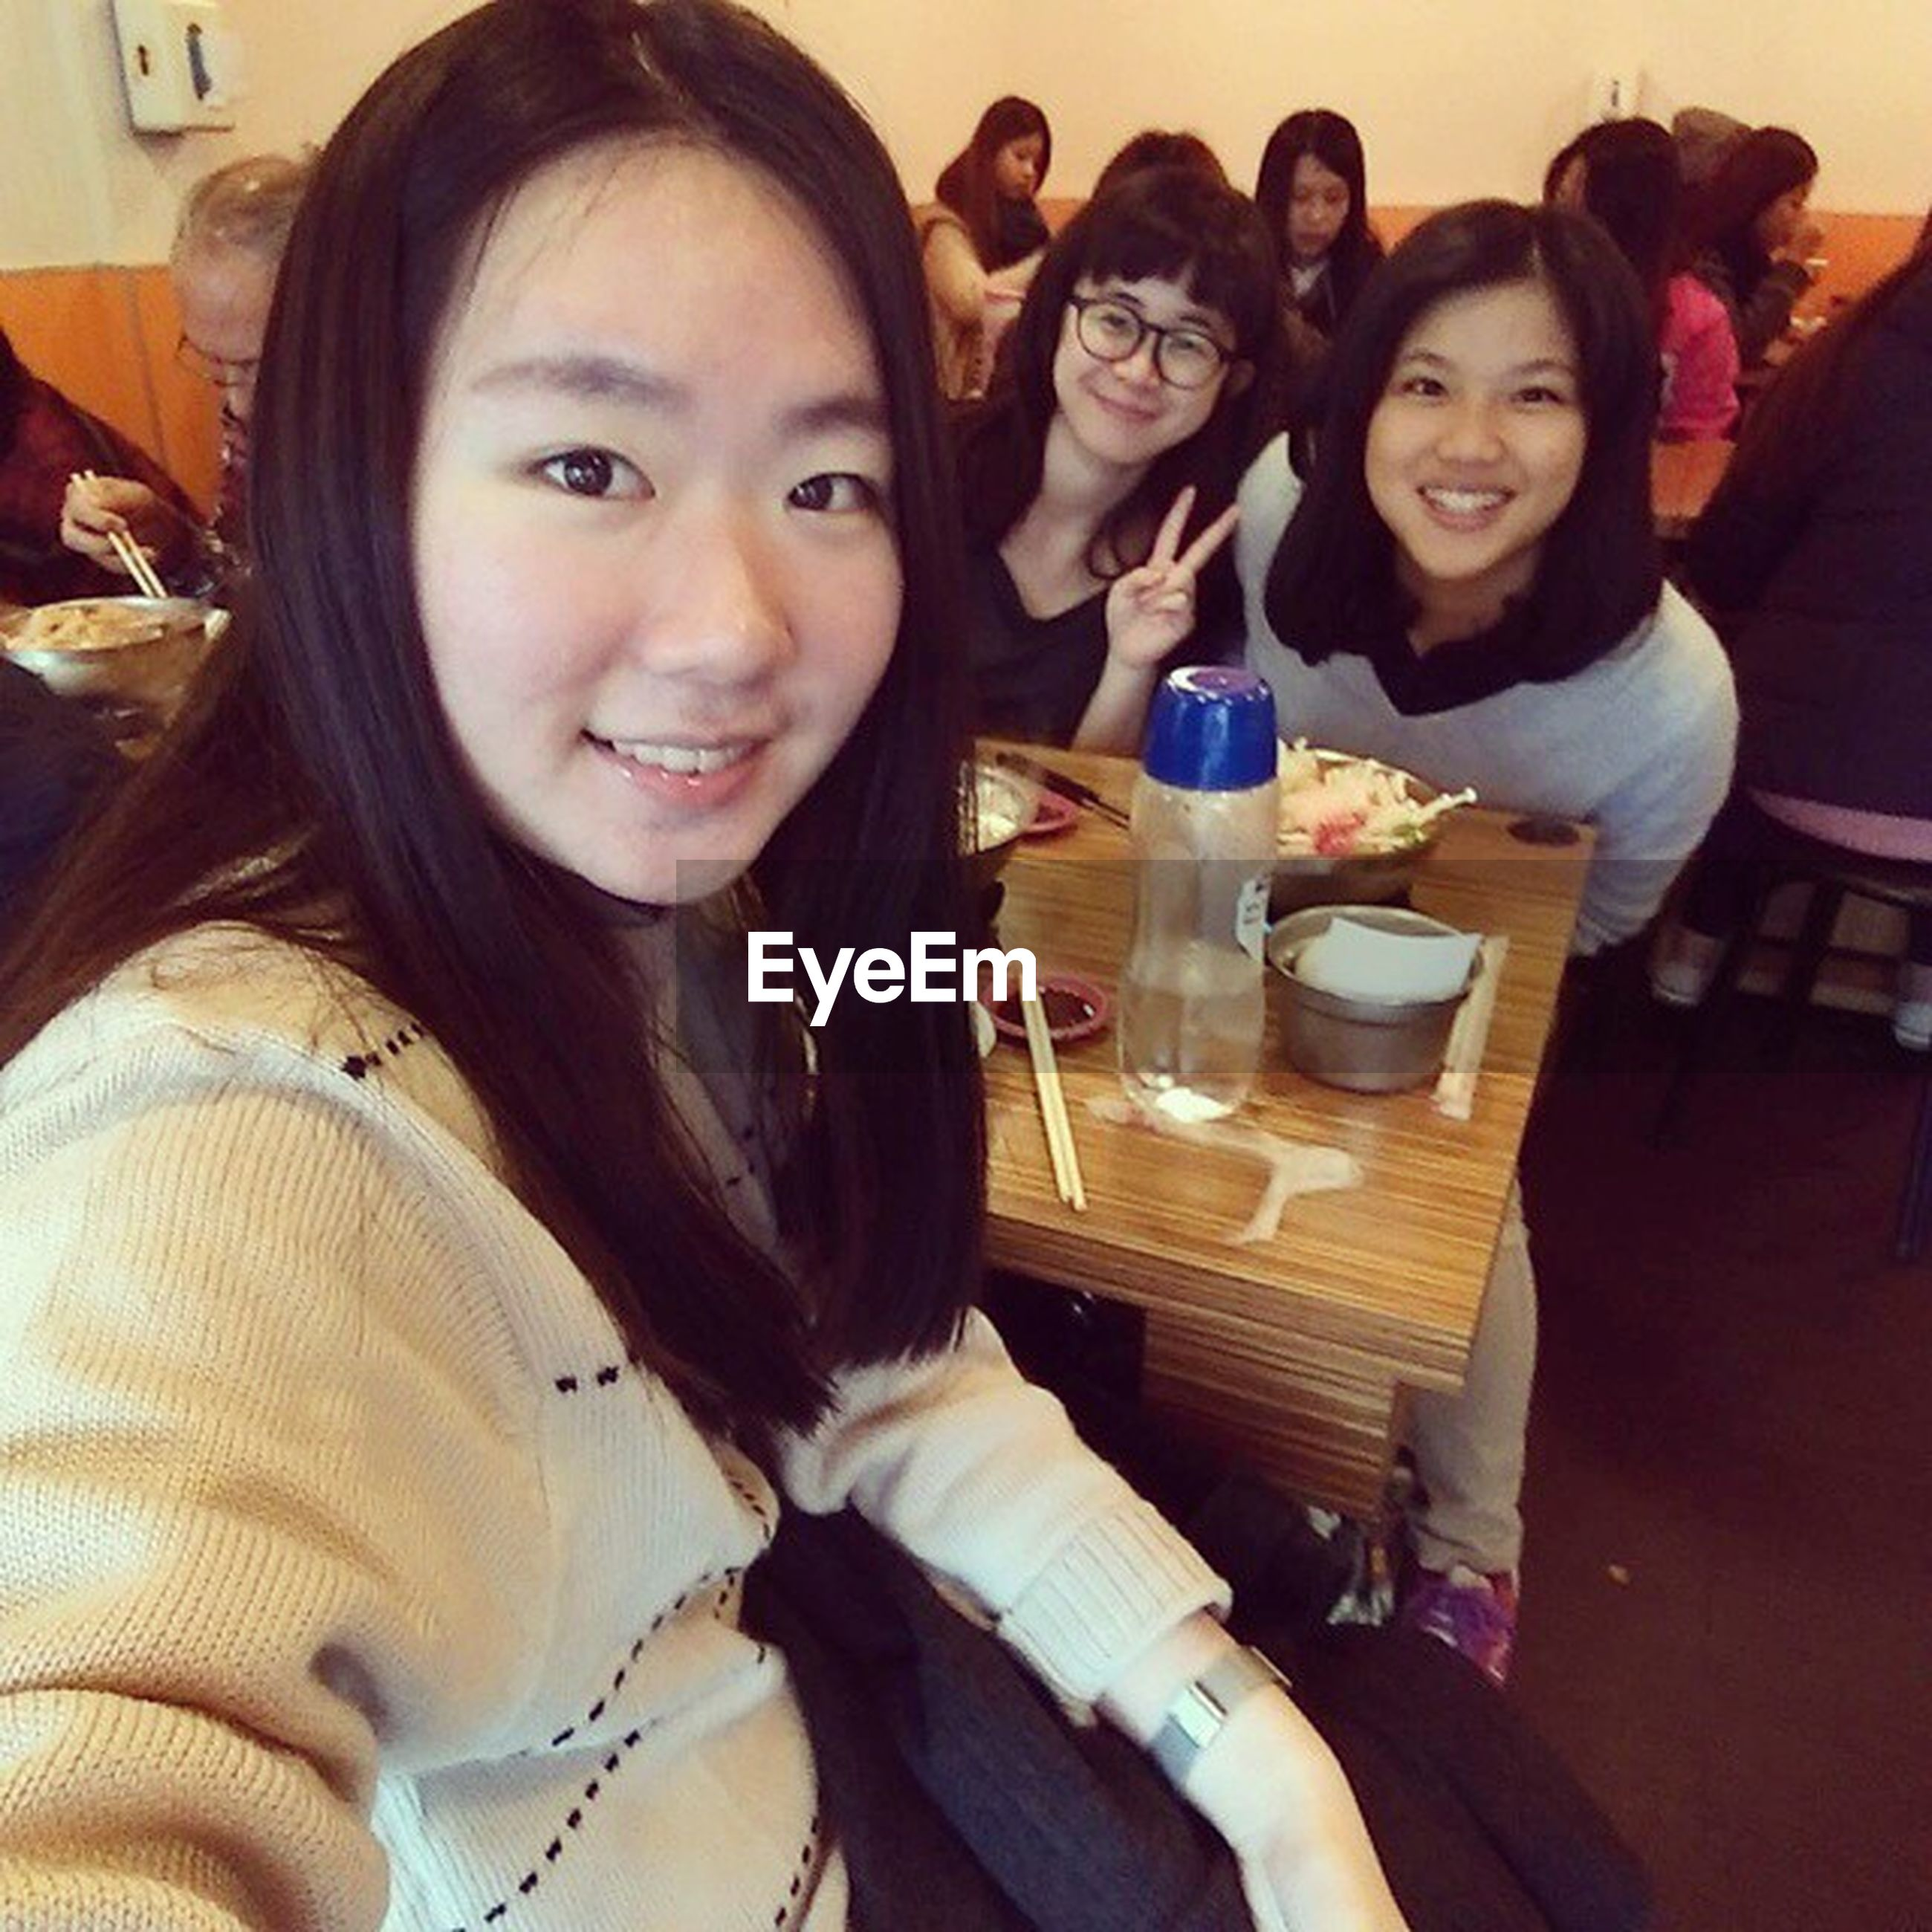 indoors, person, lifestyles, young adult, young women, casual clothing, leisure activity, togetherness, portrait, looking at camera, smiling, front view, happiness, sitting, bonding, restaurant, table